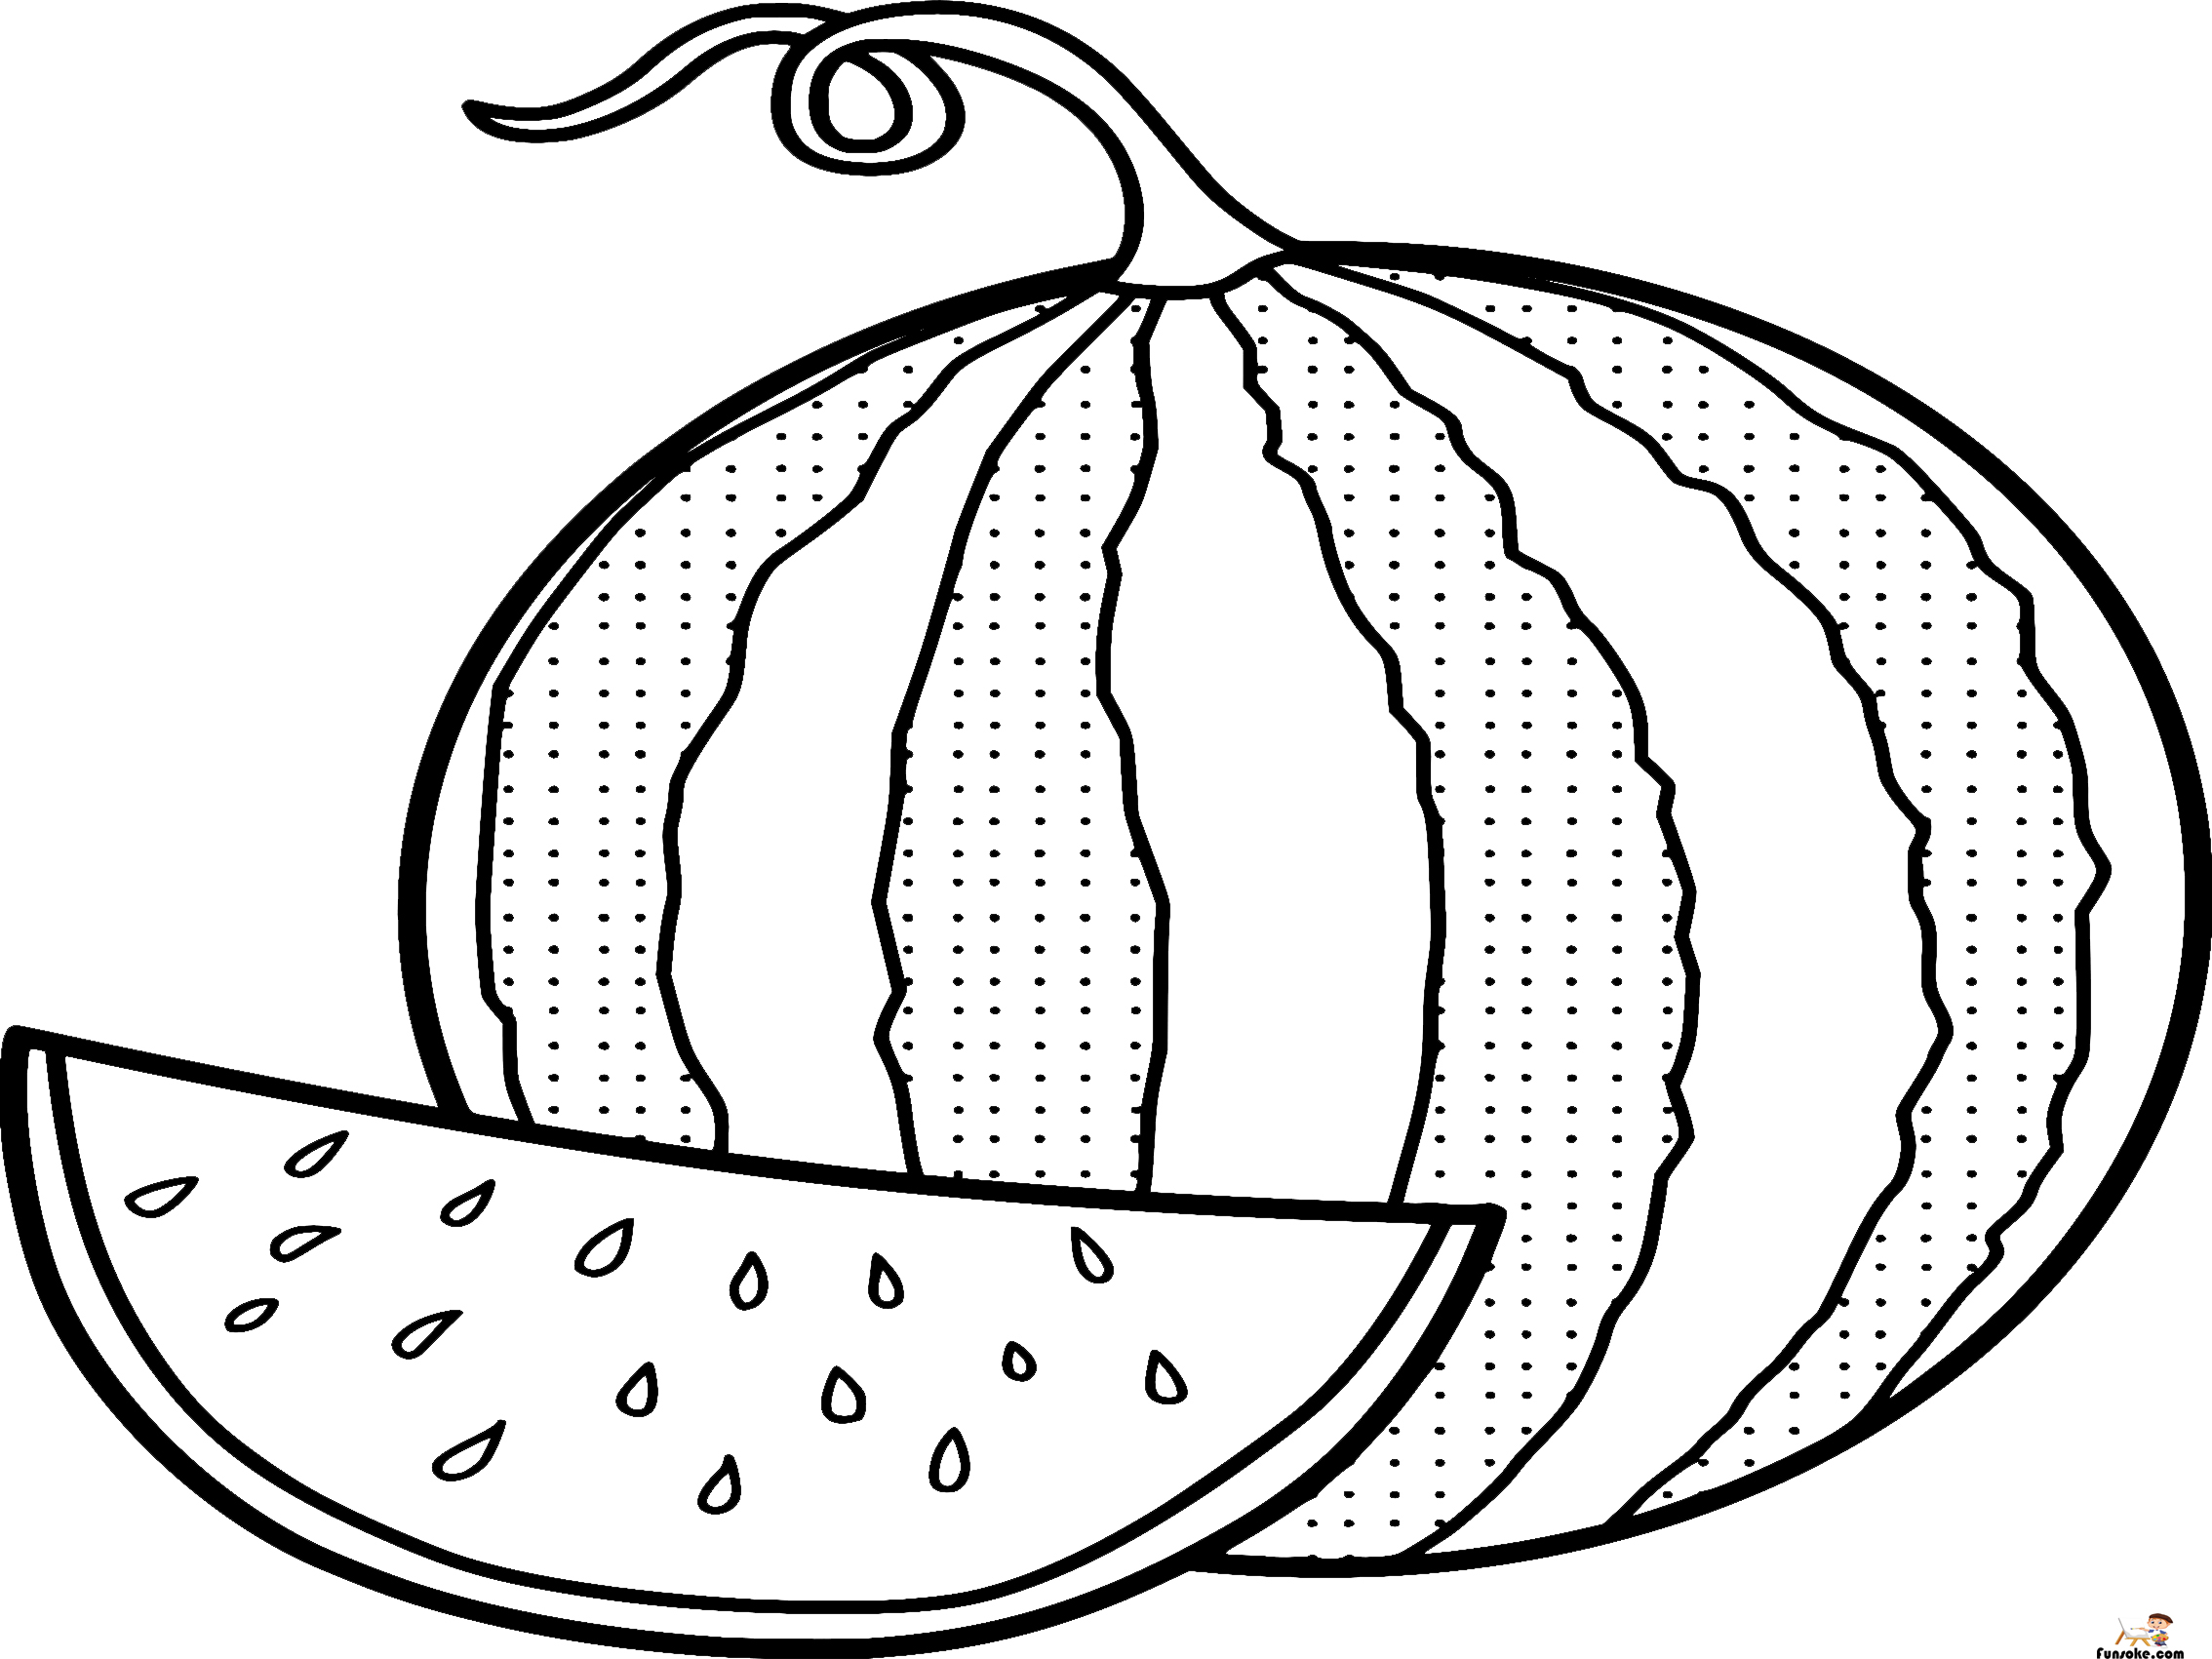 watermelon coloring image watermelon coloring pages preschoolers funsoke image watermelon coloring